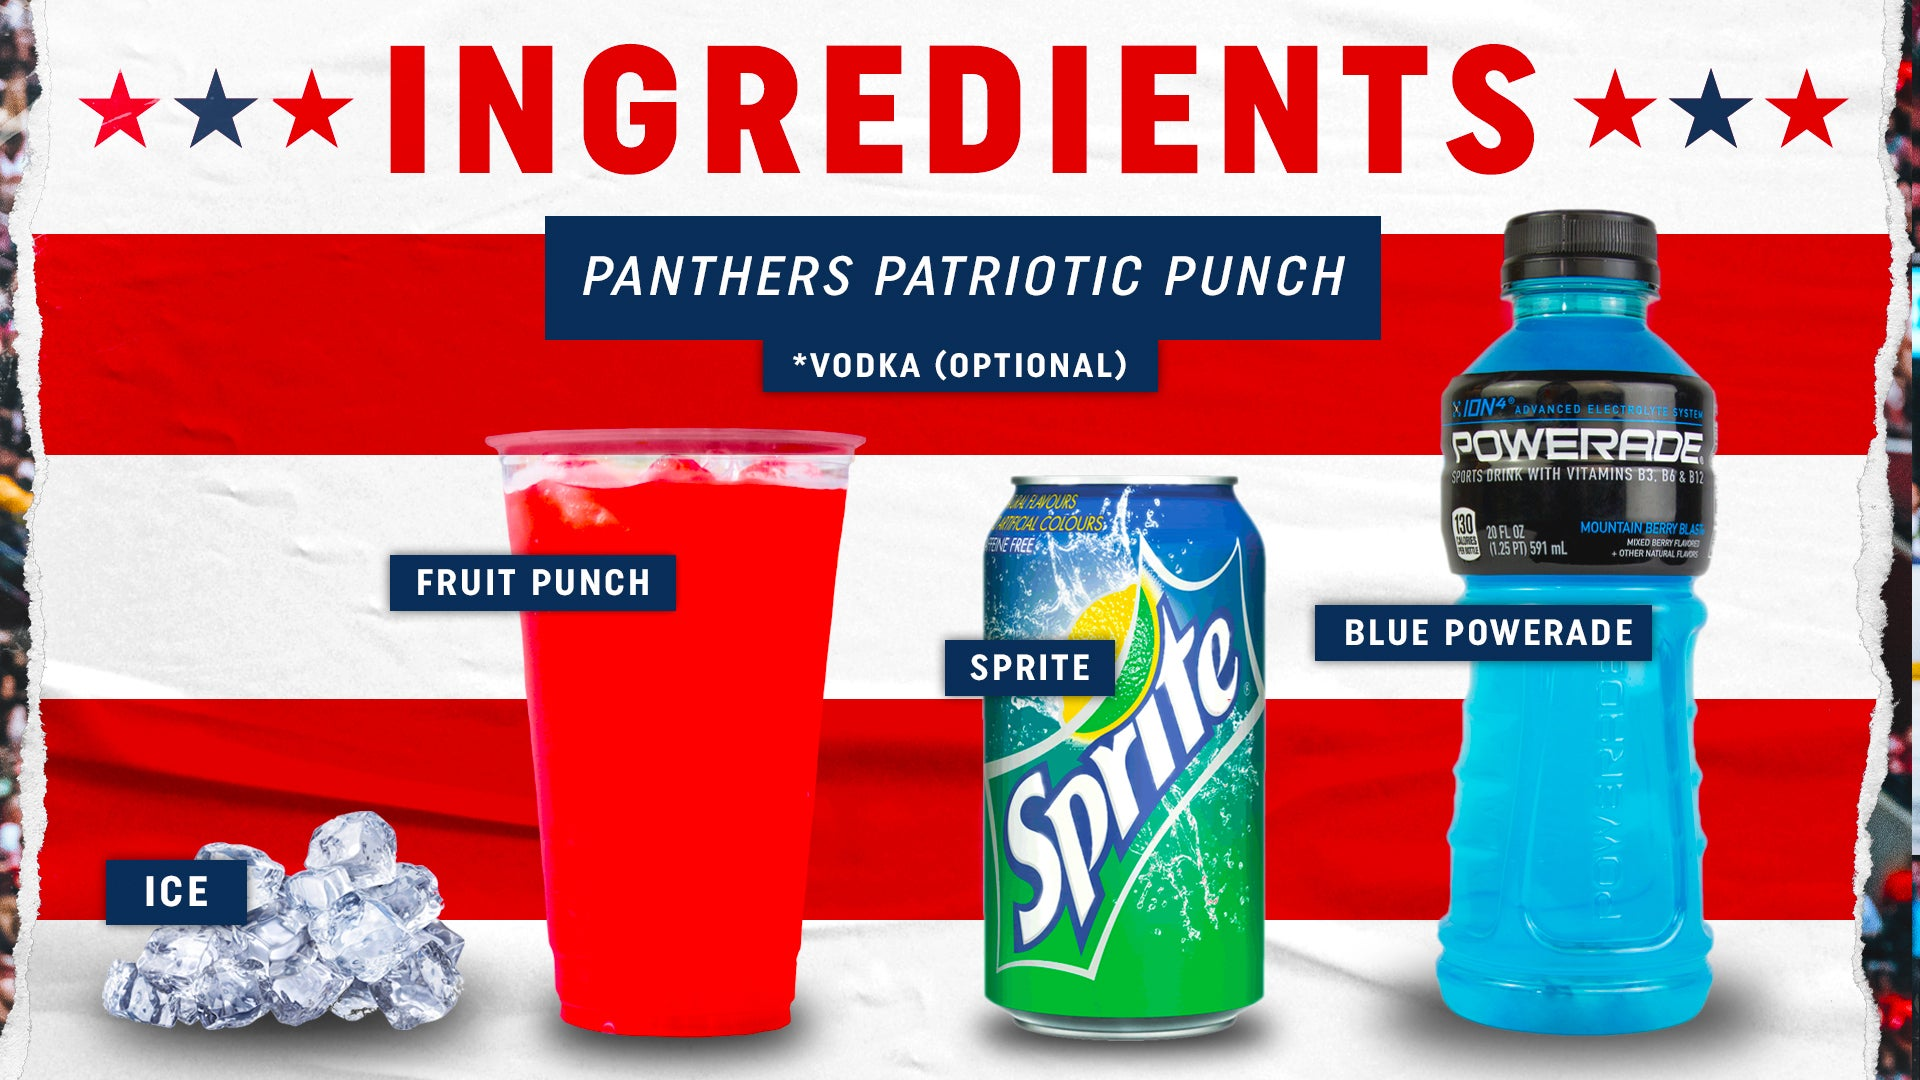 FLA_Panthers_4th_July_Recipe_Punch_Ingredients_16x9.jpg